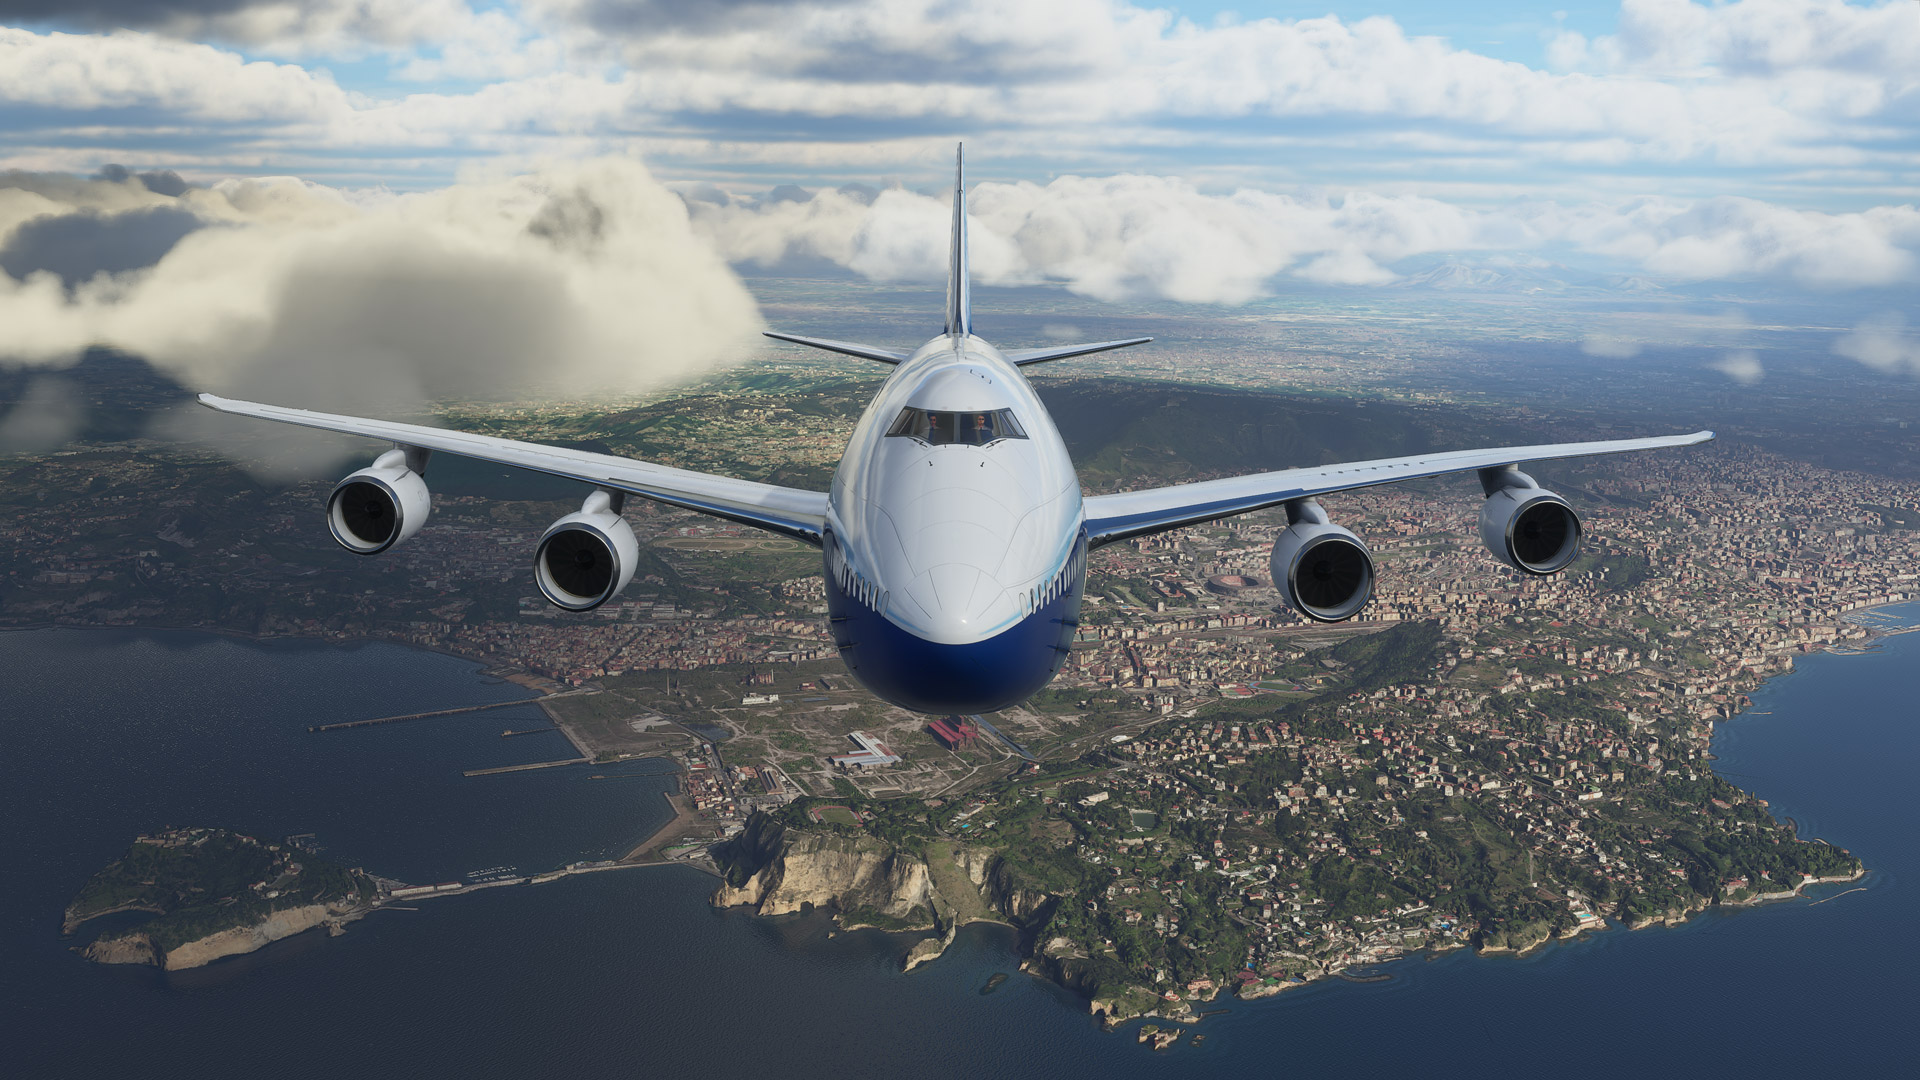 Microsoft Flight Simulator (2020) Wallpaper in 1920x1080